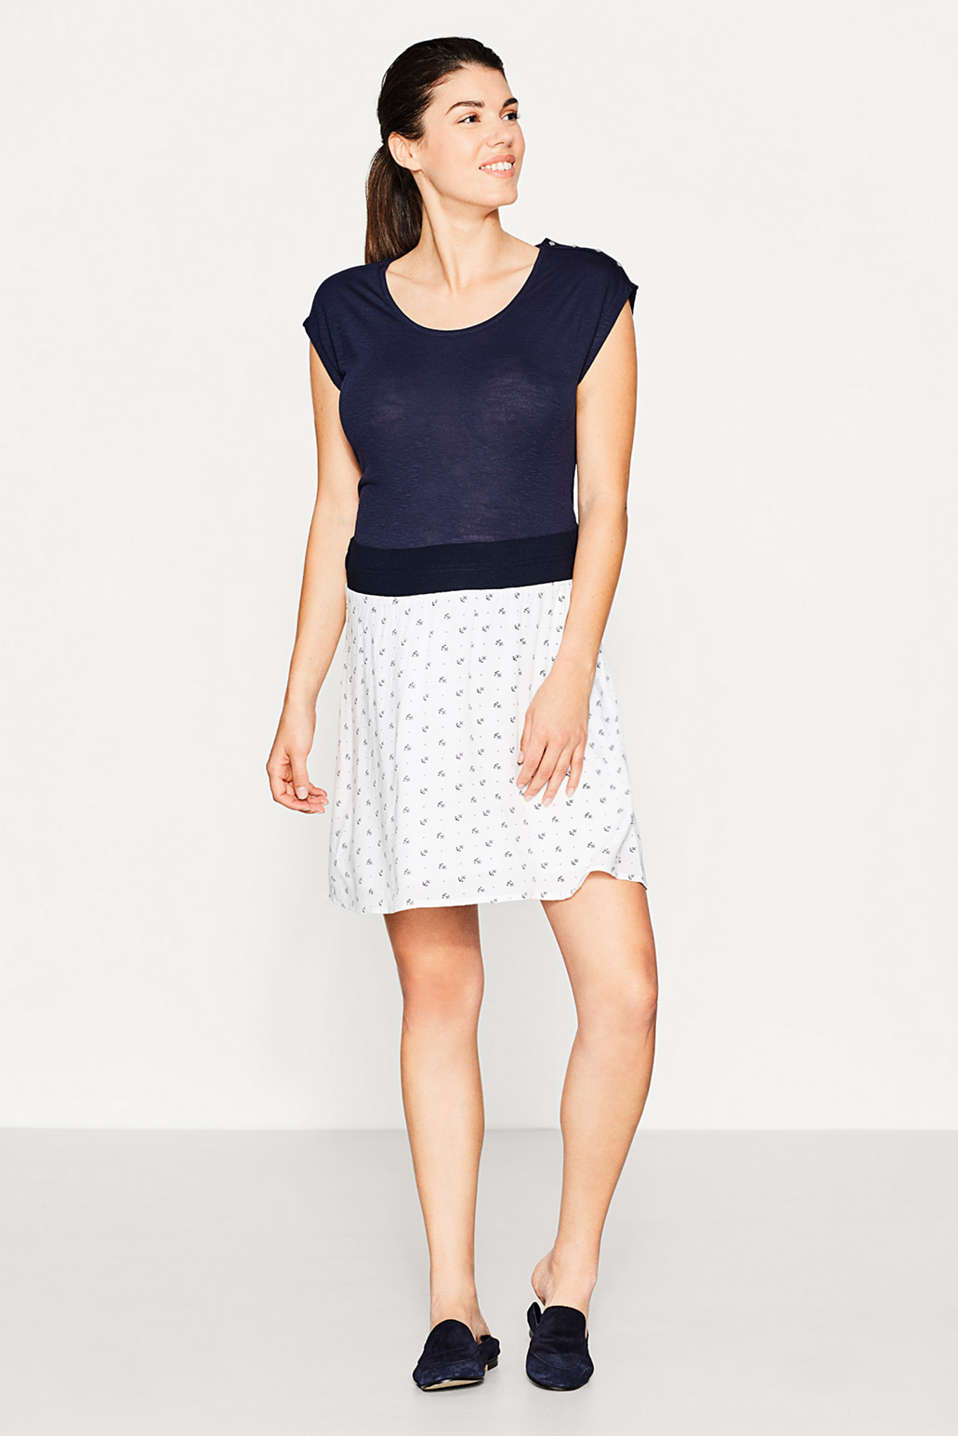 Esprit - Flowing print skirt + under-bump waistband